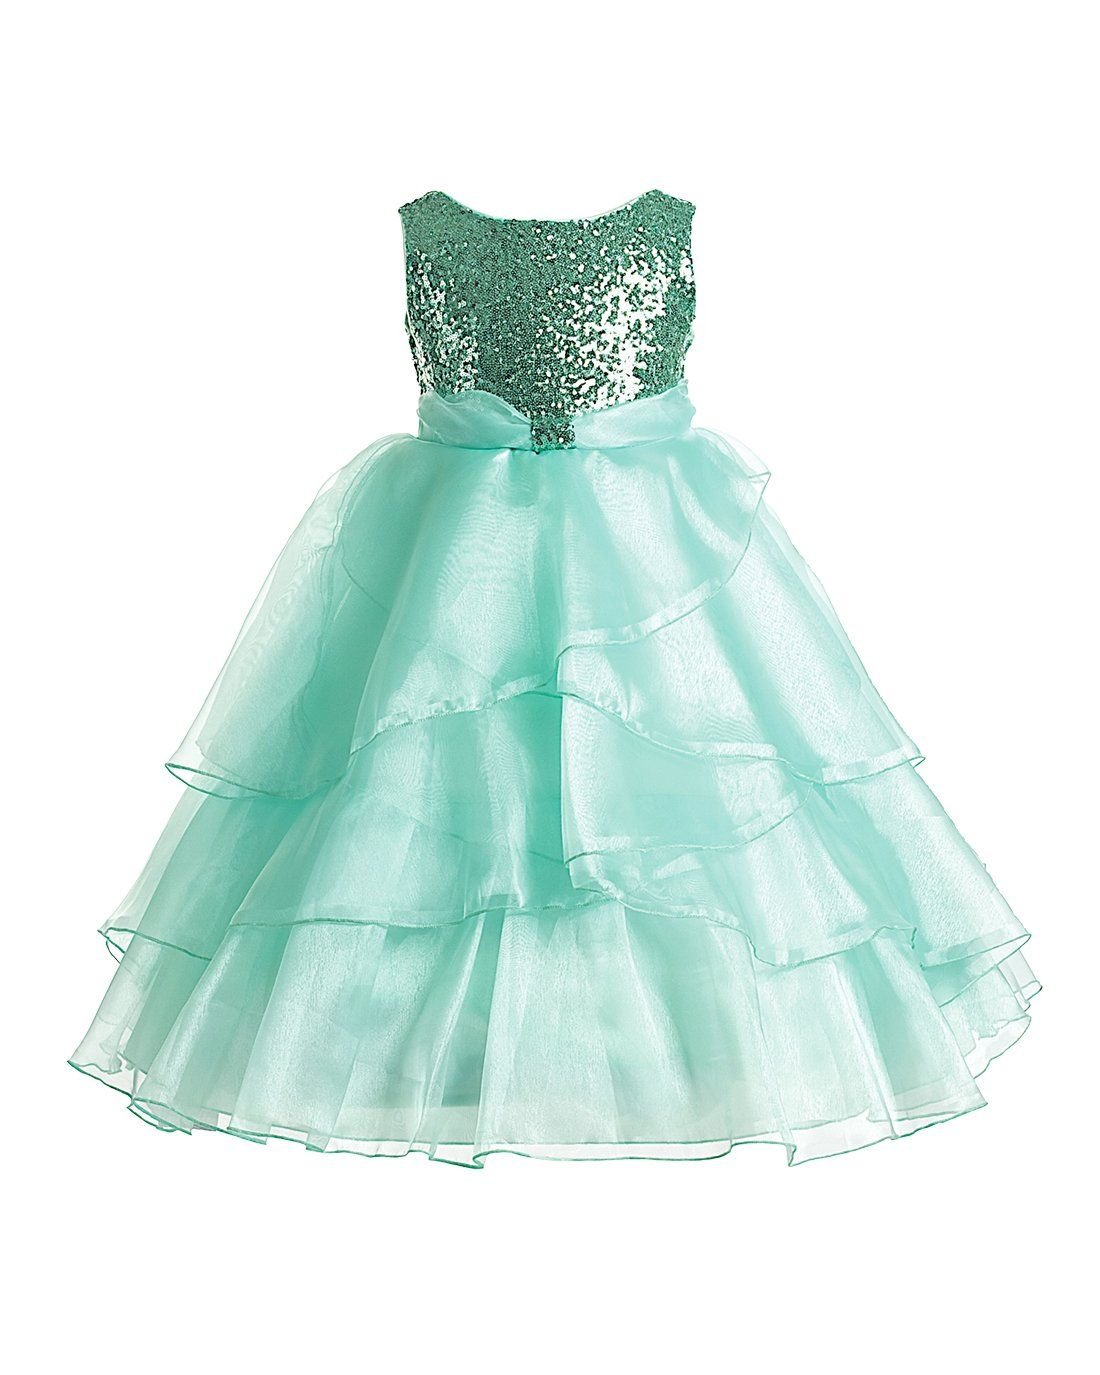 Joy Kids - 3 Colors - Big Girls Sequin Top Tiered Organza Special Occasion Dress 10 Mint